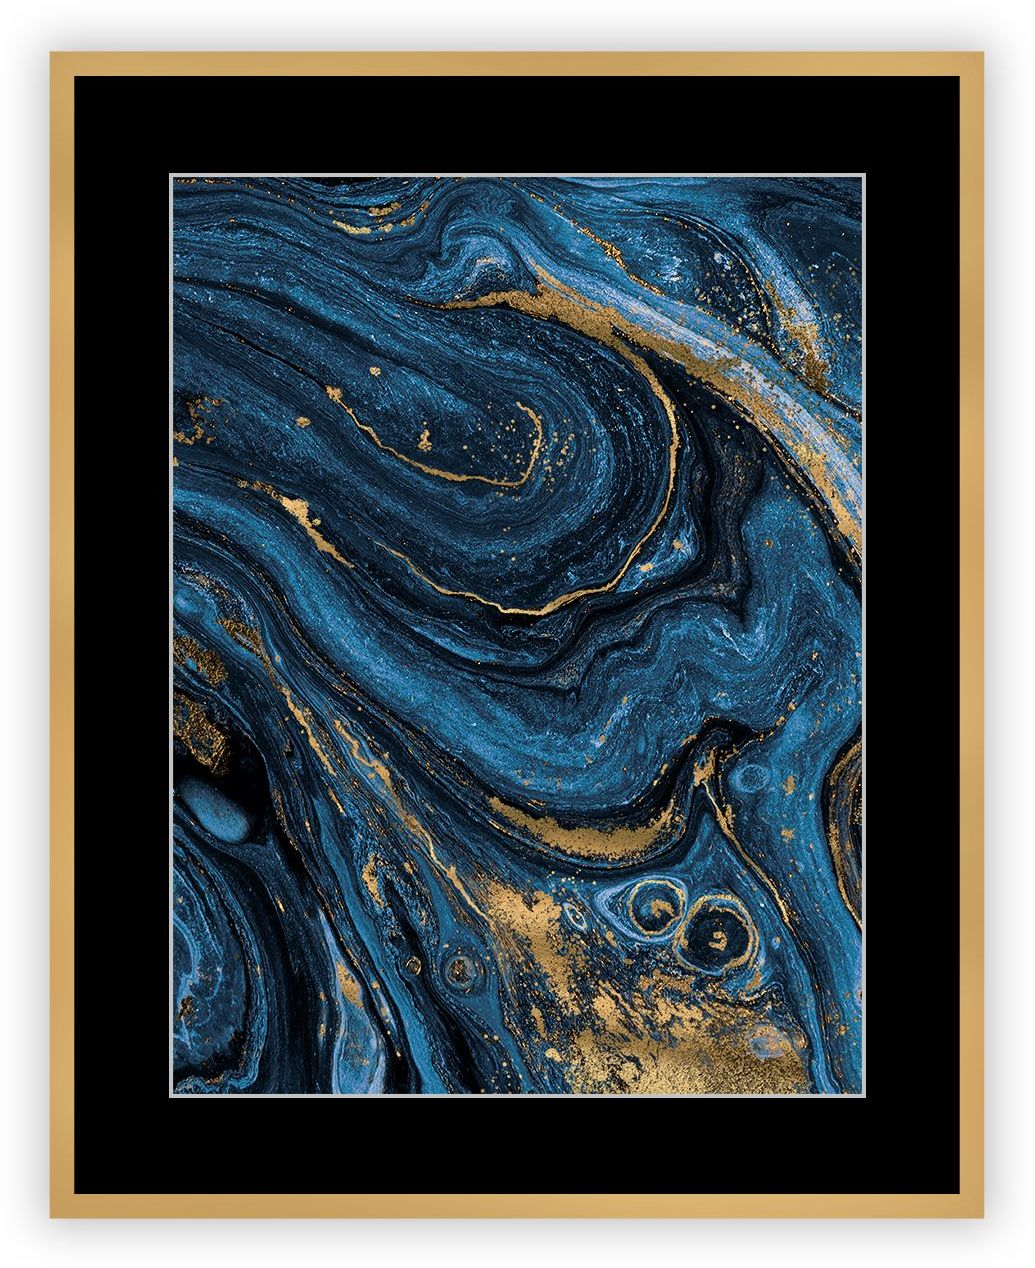 Obraz Abstract Blue&Gold II 40 x 50 cm